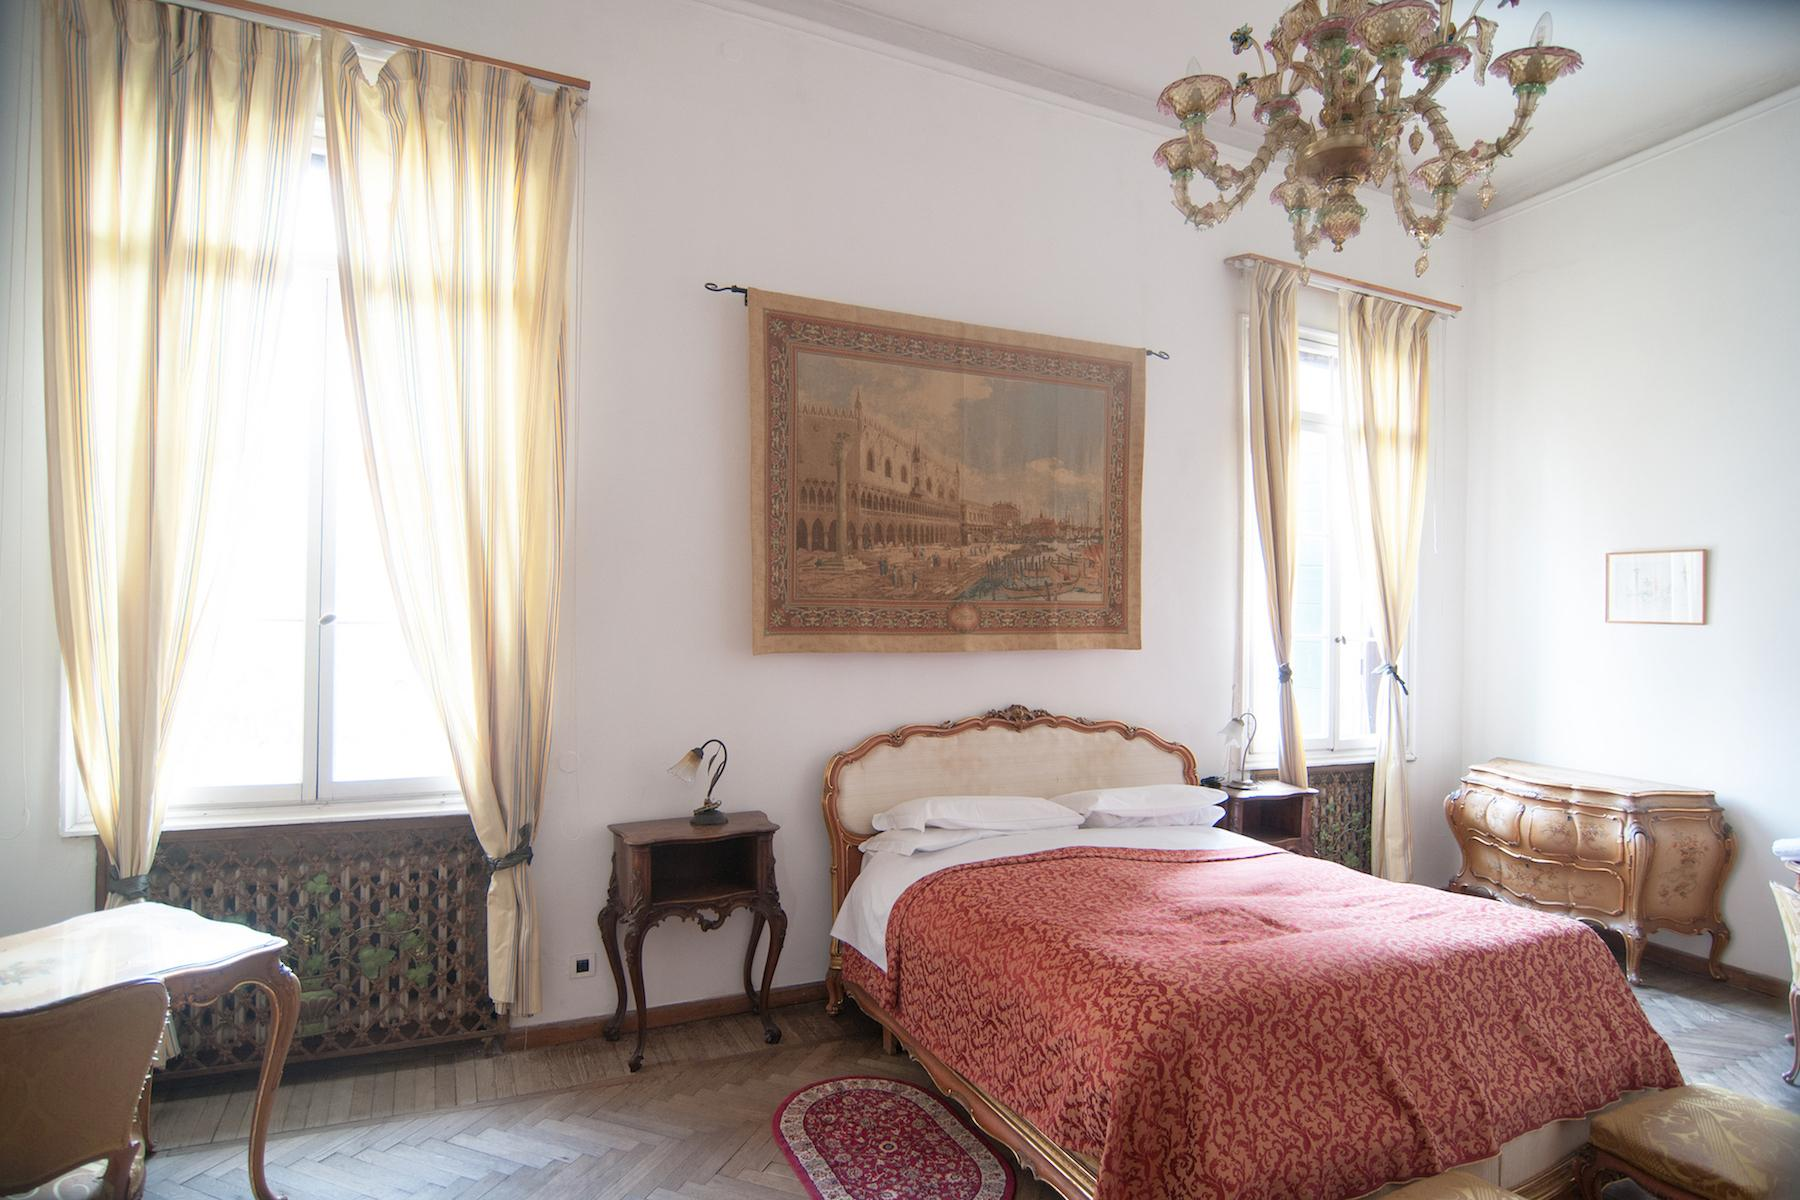 16th Century Palazzetto with permissions for a 23 bedroom hotel - 13